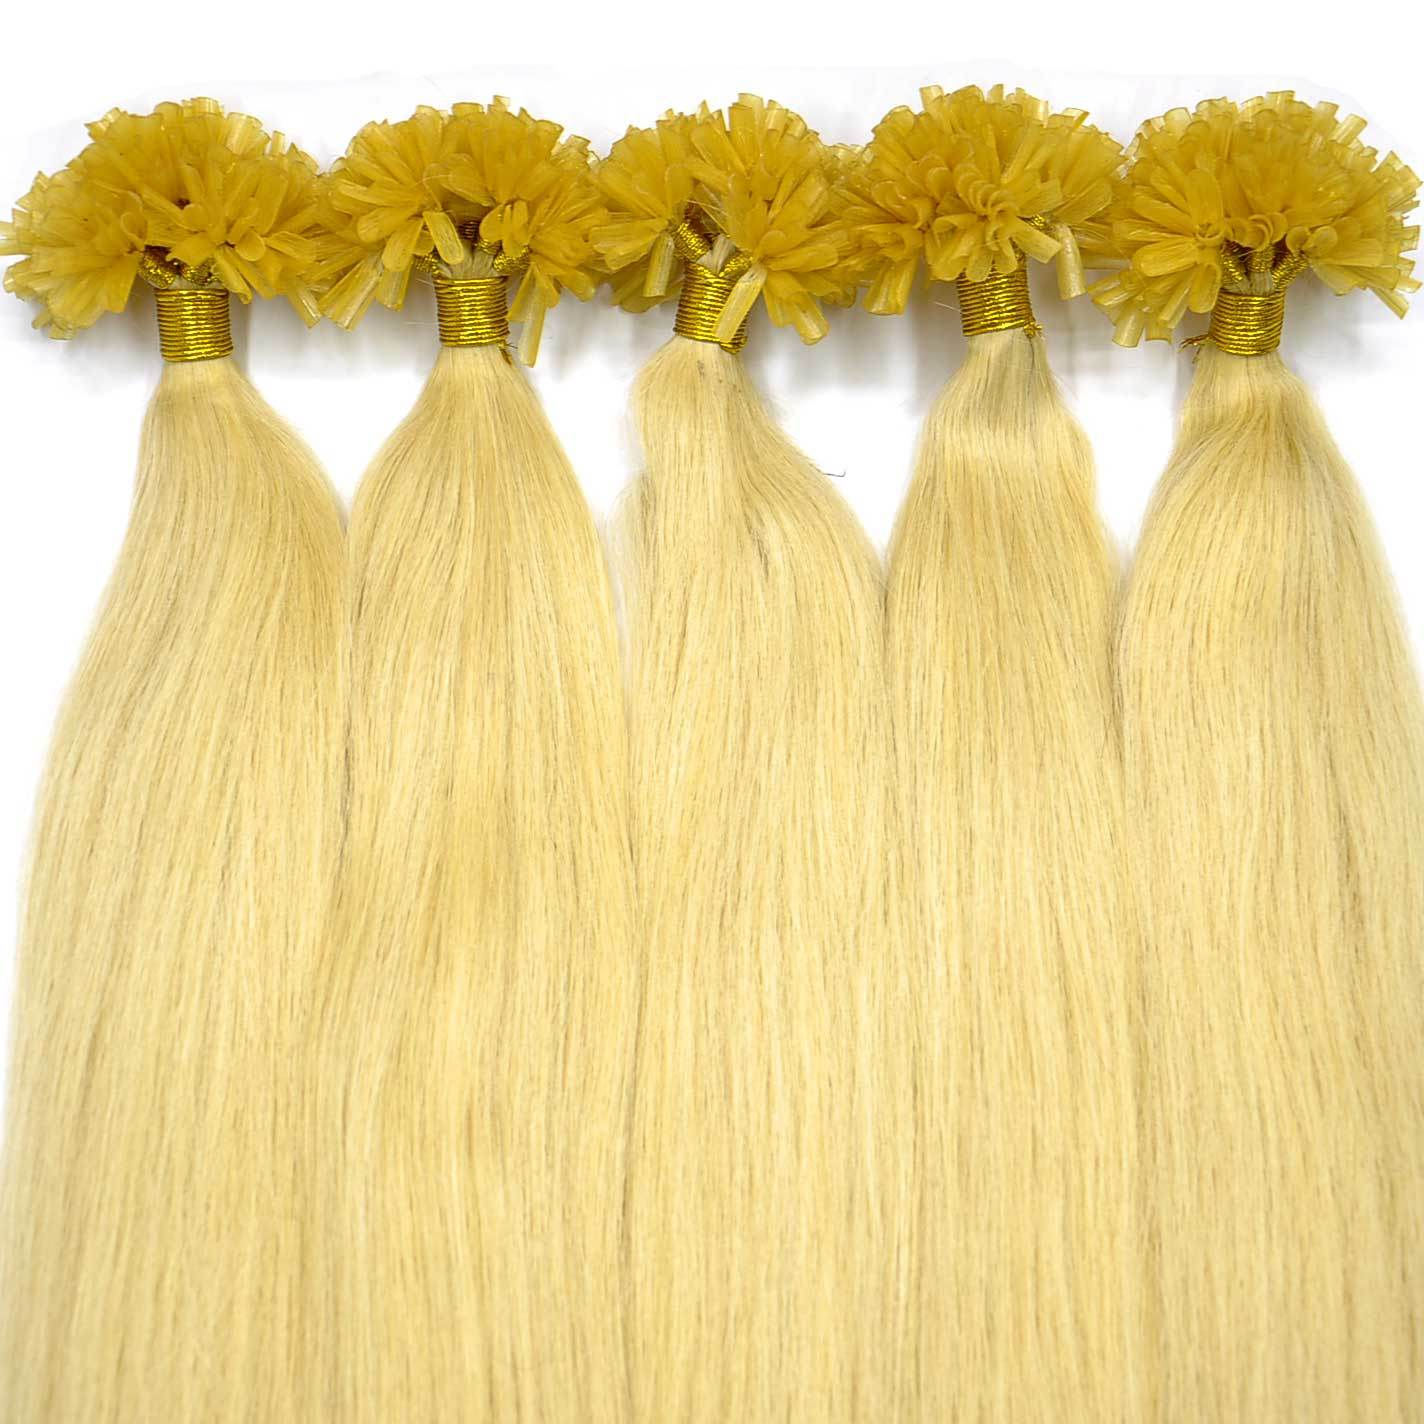 China Pre Bonded Human U Tip Hair Extensions Photos Pictures